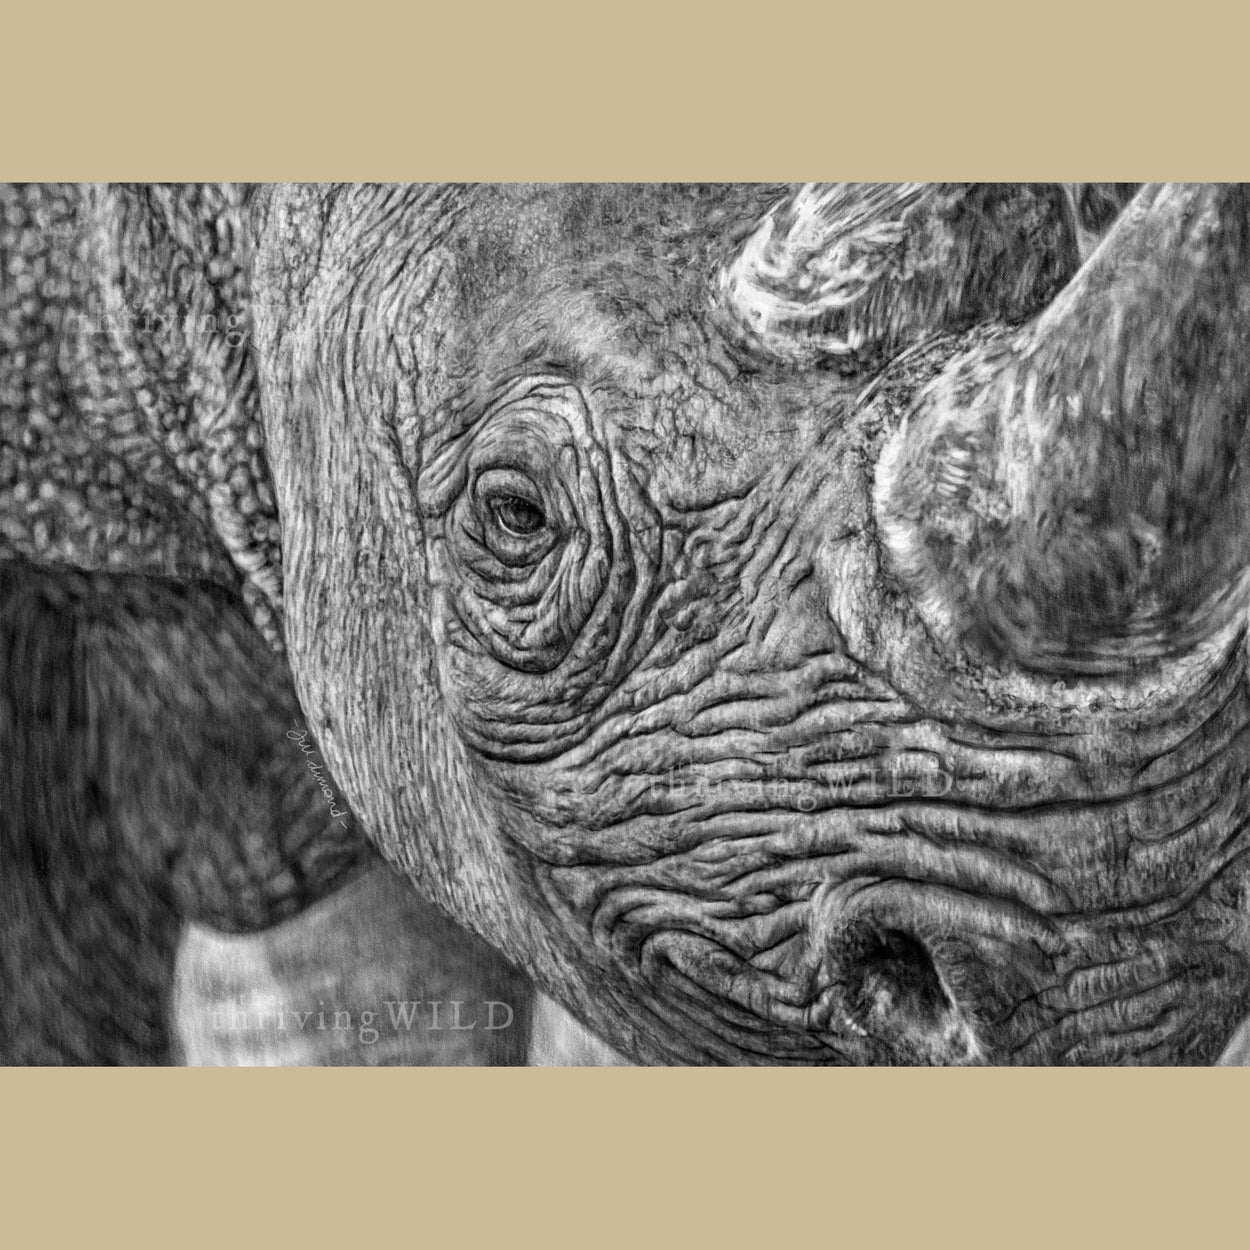 Rhino Wildlife Digital Drawing Procreate - The Thriving Wild